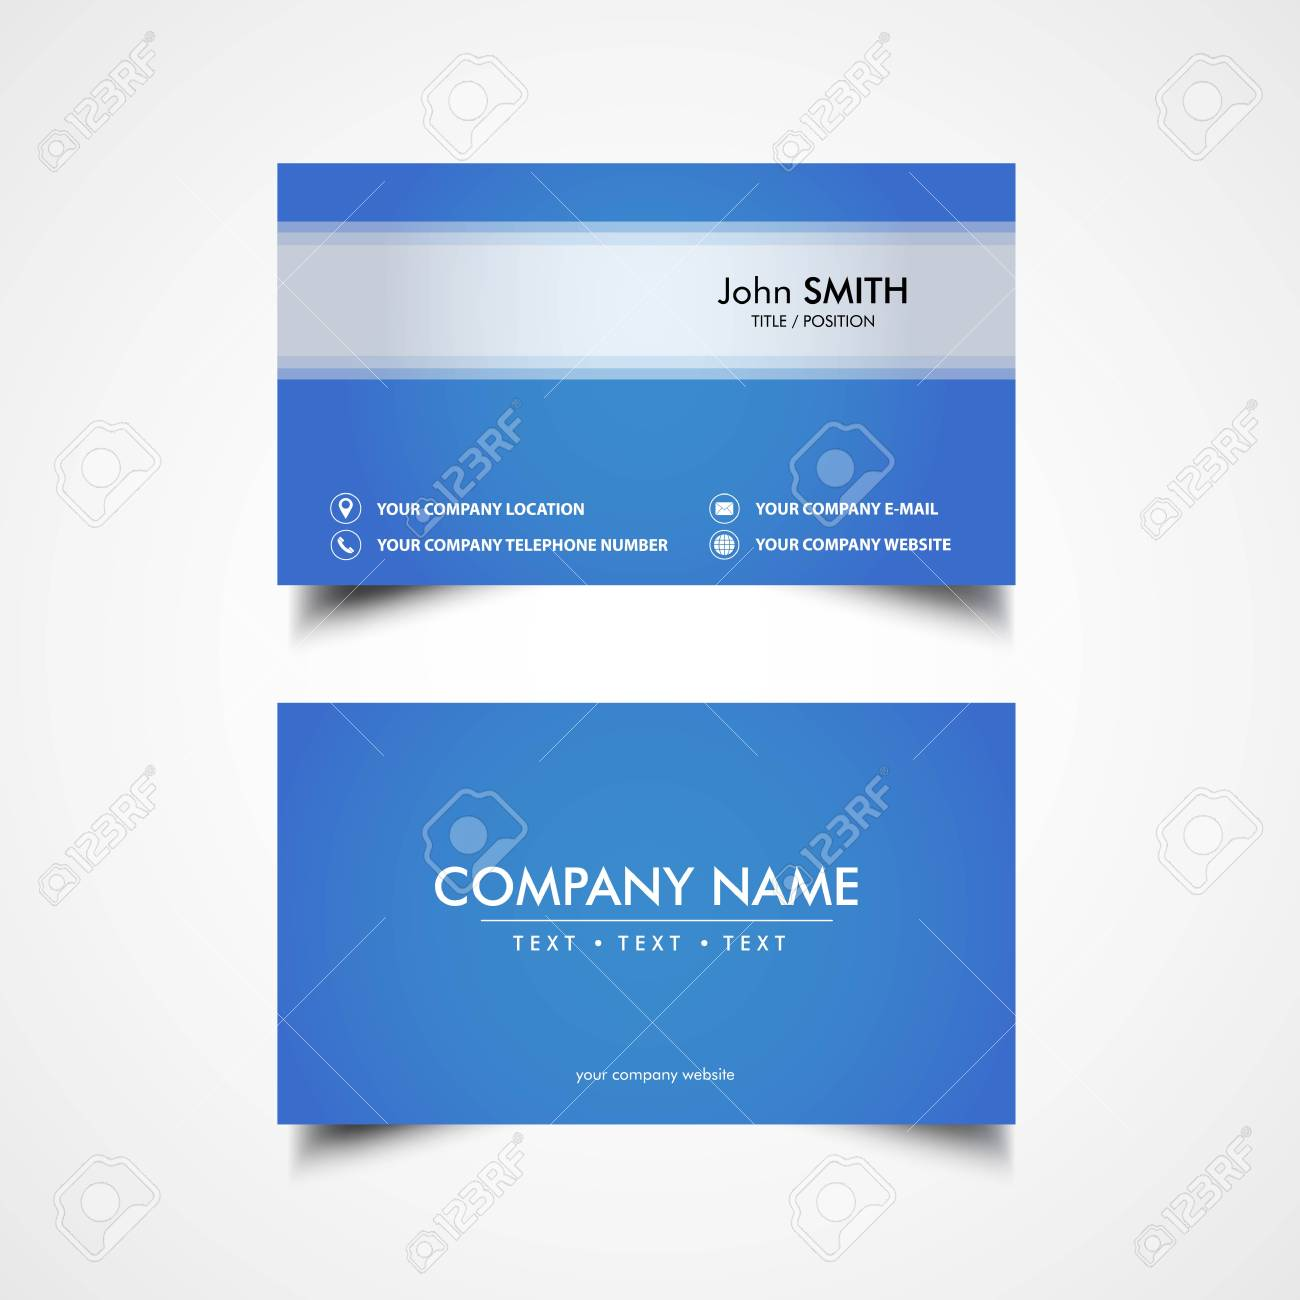 Simple Business Card Template, Vector, Illustration, Eps File ...